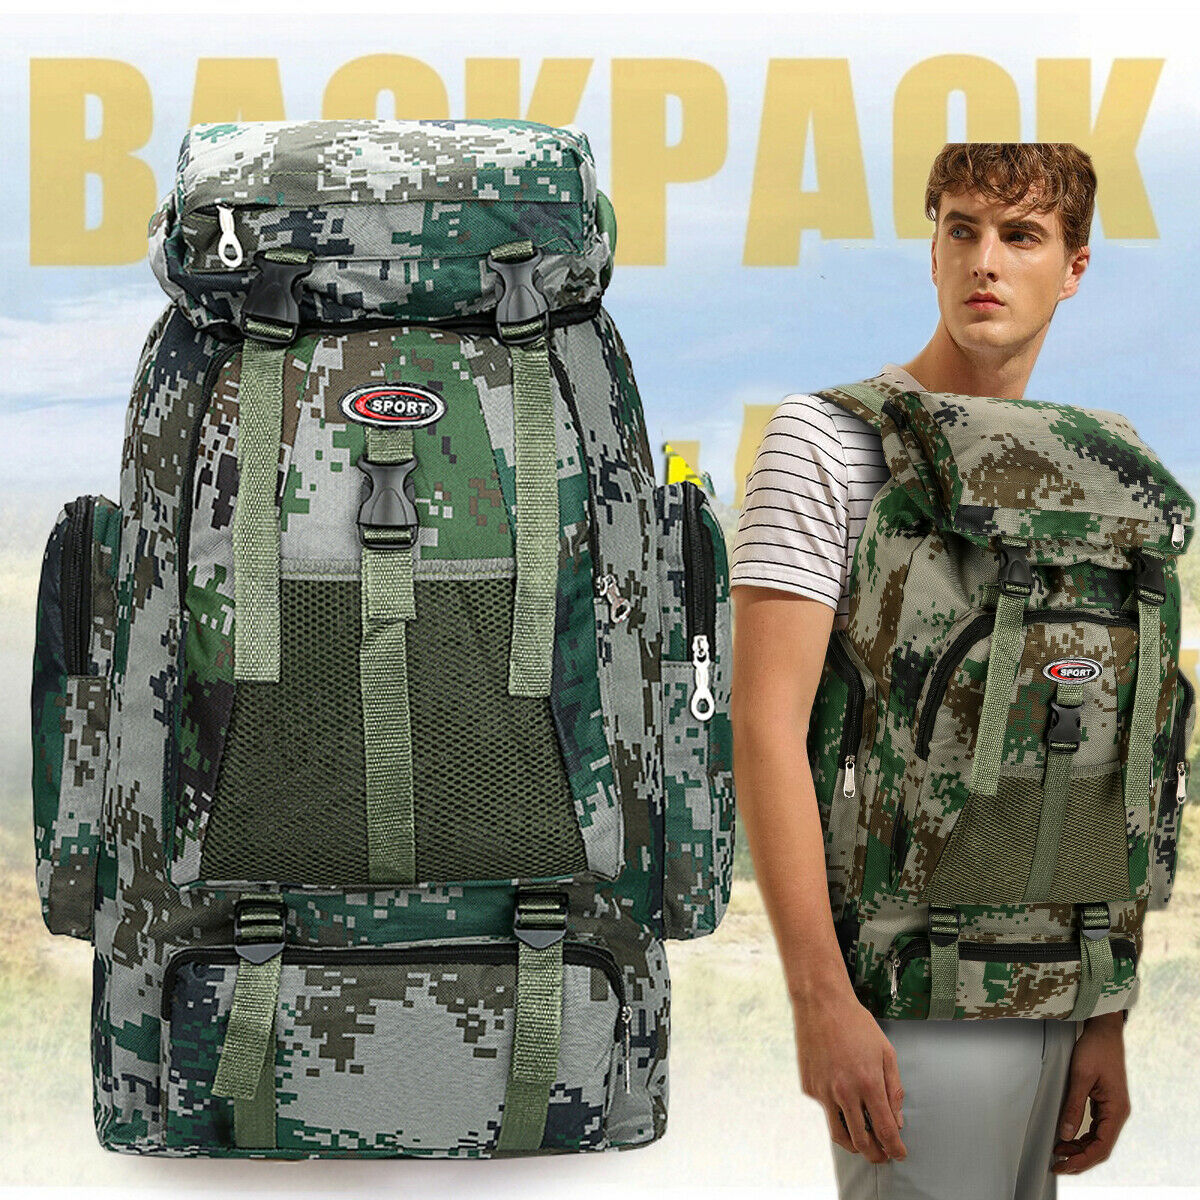 Outdoor Military Tactical Army Backpack Sports Waterproof Hiking Camping Bag Travel Backpack Luggage Rucksack